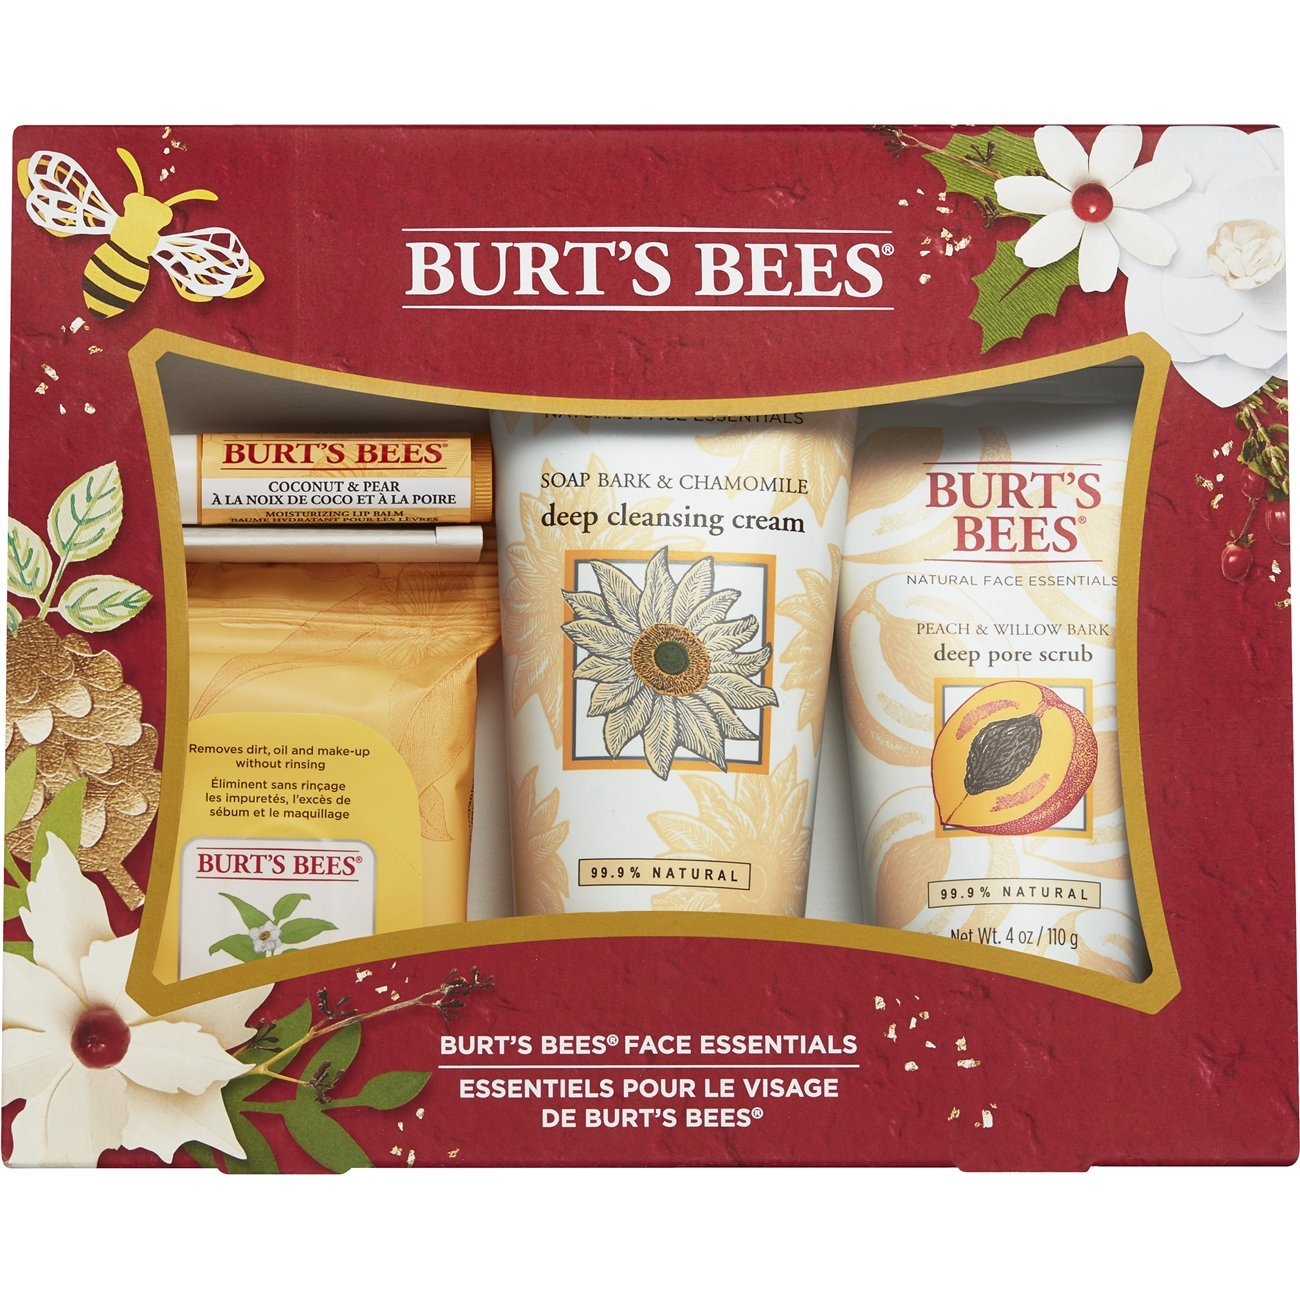 Burt's Bees Face Essentials Holiday Gift Set, 4 Skin Care Products – Cleansing Towelettes, Deep Cleansing Cream, Deep Pore Scrub and Lip Balm Burt' s Bees 89920-24